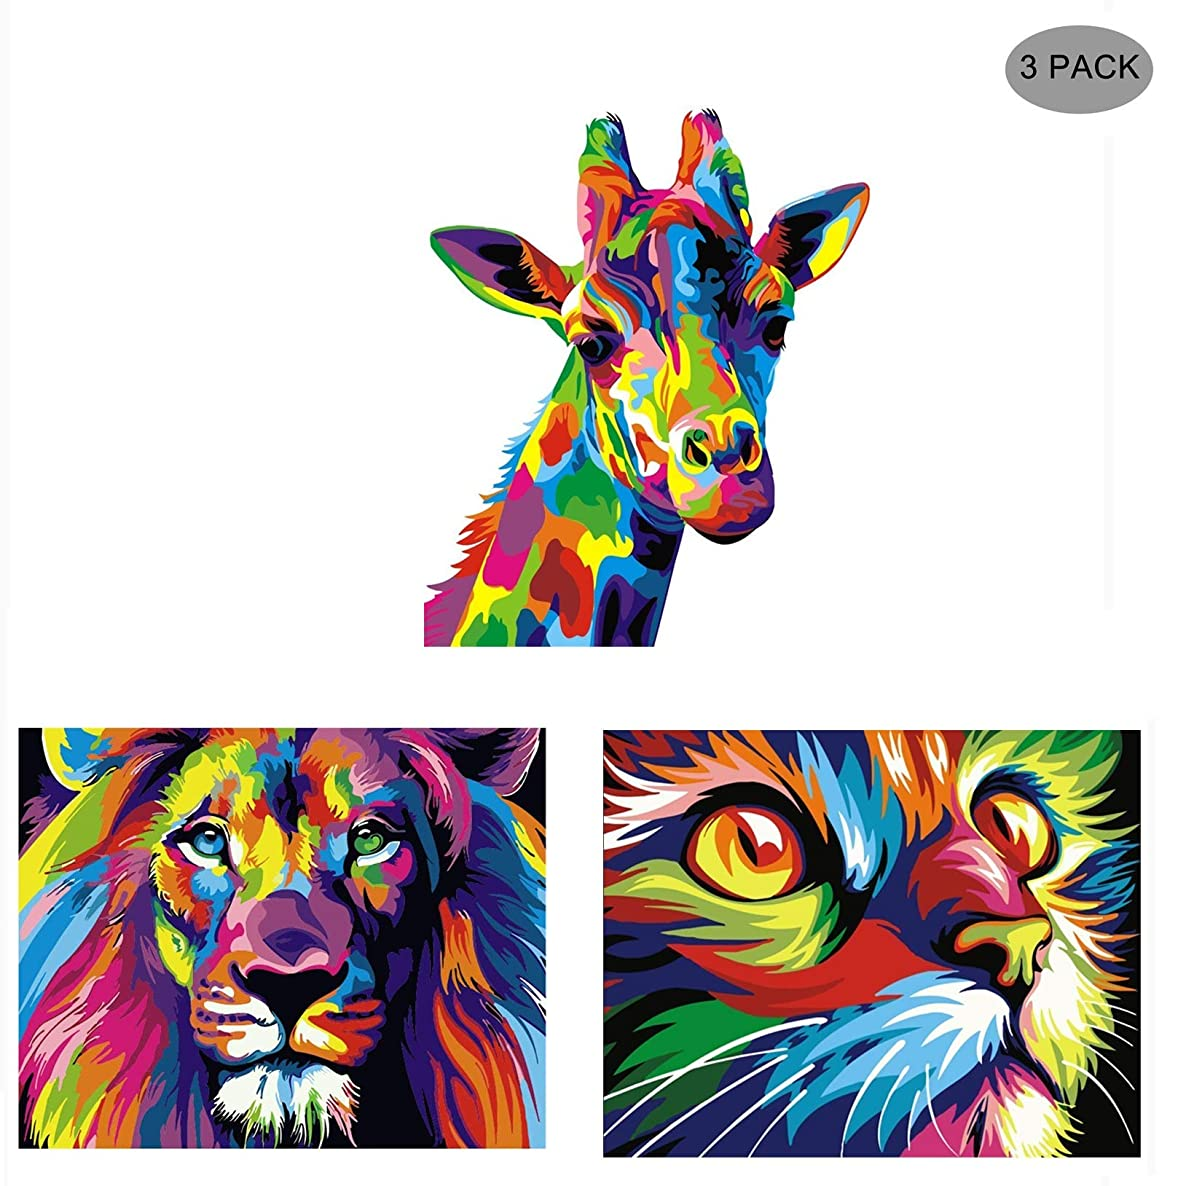 5D Diamond Painting Kit Full Drill,Annomor DIY Diamond Rhinestone Painting Kits Embroidery Arts Craft,Home and Office Wall Decor or Birthday, Anniversary, Wedding Gift (3 Pack-Colorful Lion,Cat,Deer)